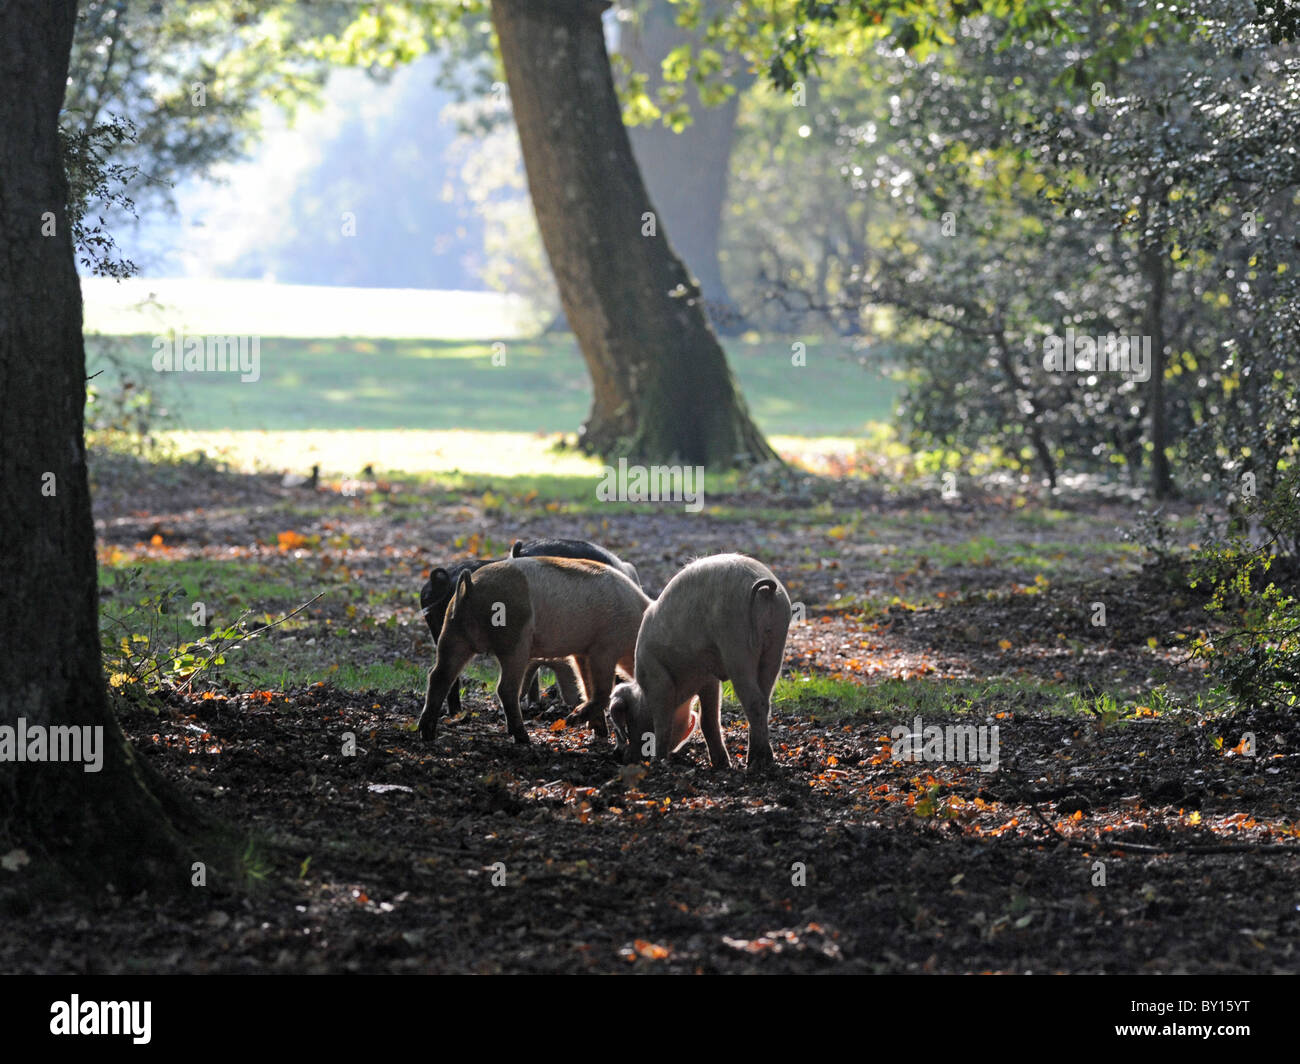 Pigs in the New Forest, Hampshire hunting for acorns by digging with their snouts. Stock Photo